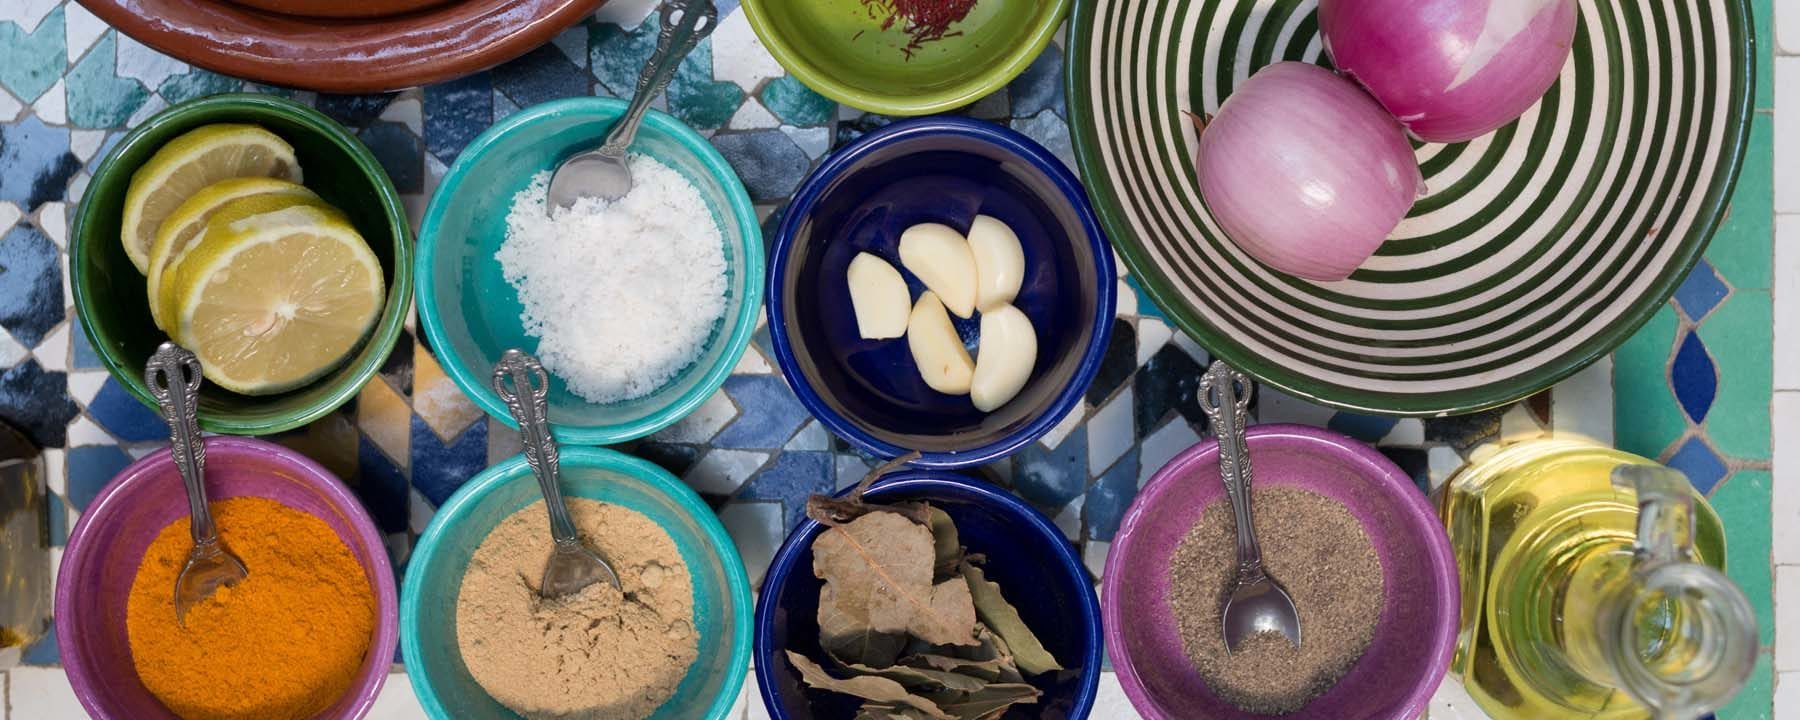 marrakesh-cooking-class_source-origin-hotels